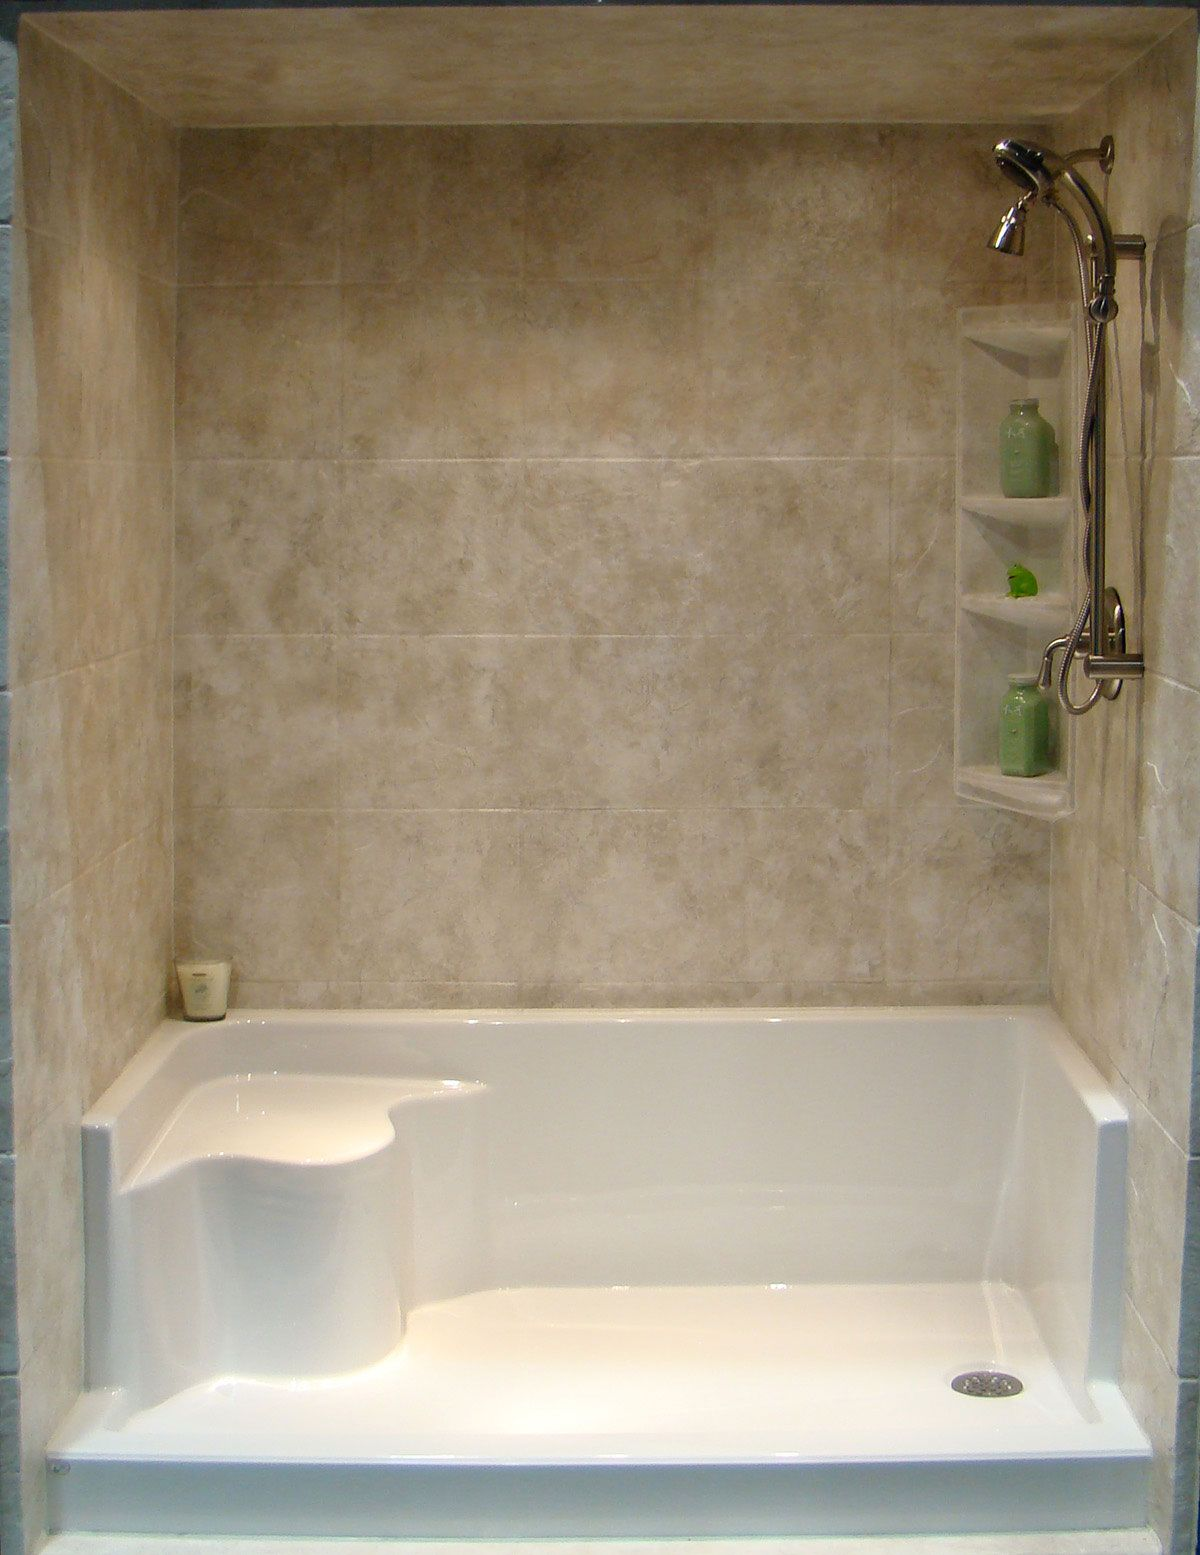 Replace Mobile Home Tub With Shower With Images Mobile Home